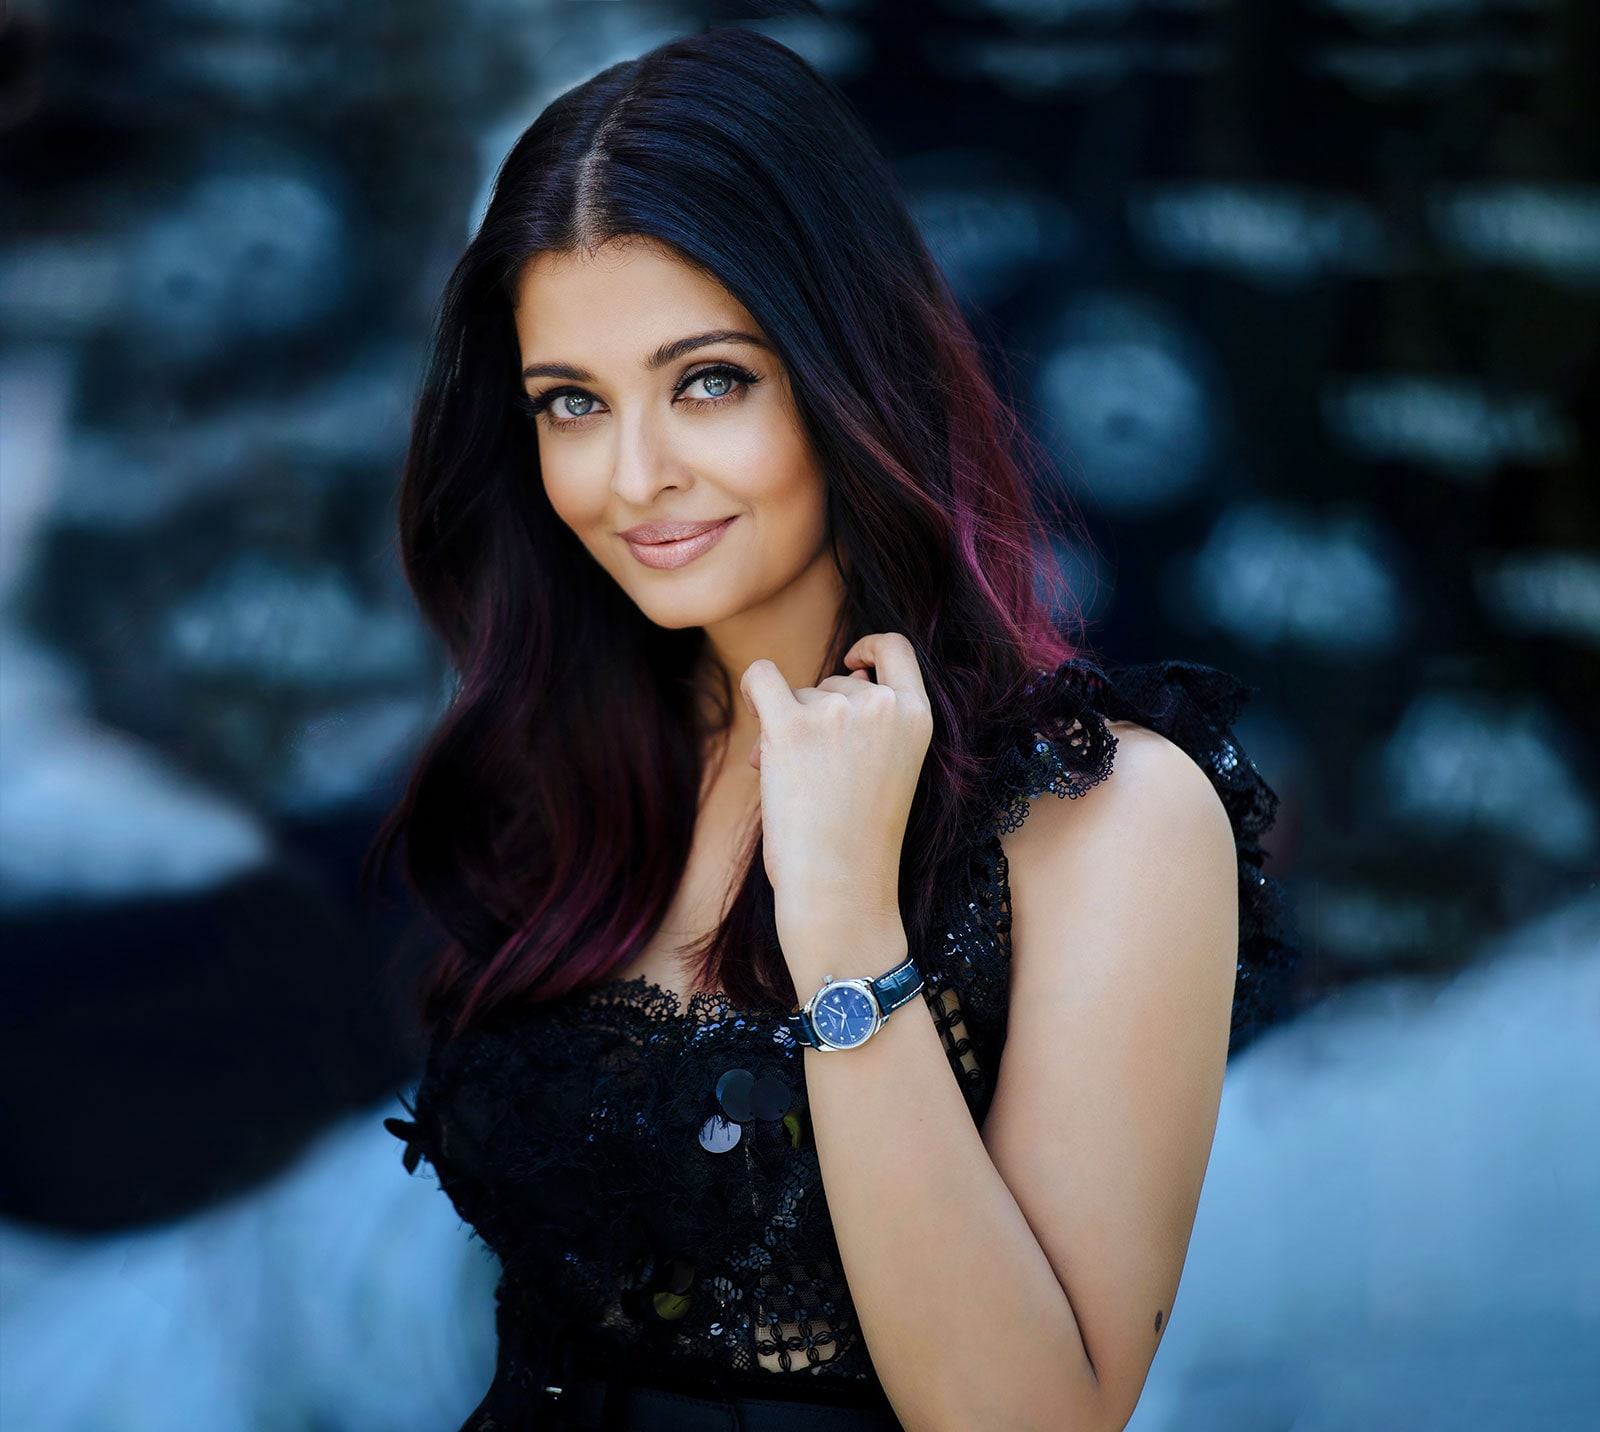 Aishwarya Rai Bachchan ambassador of the Longines PrimaLuna watch